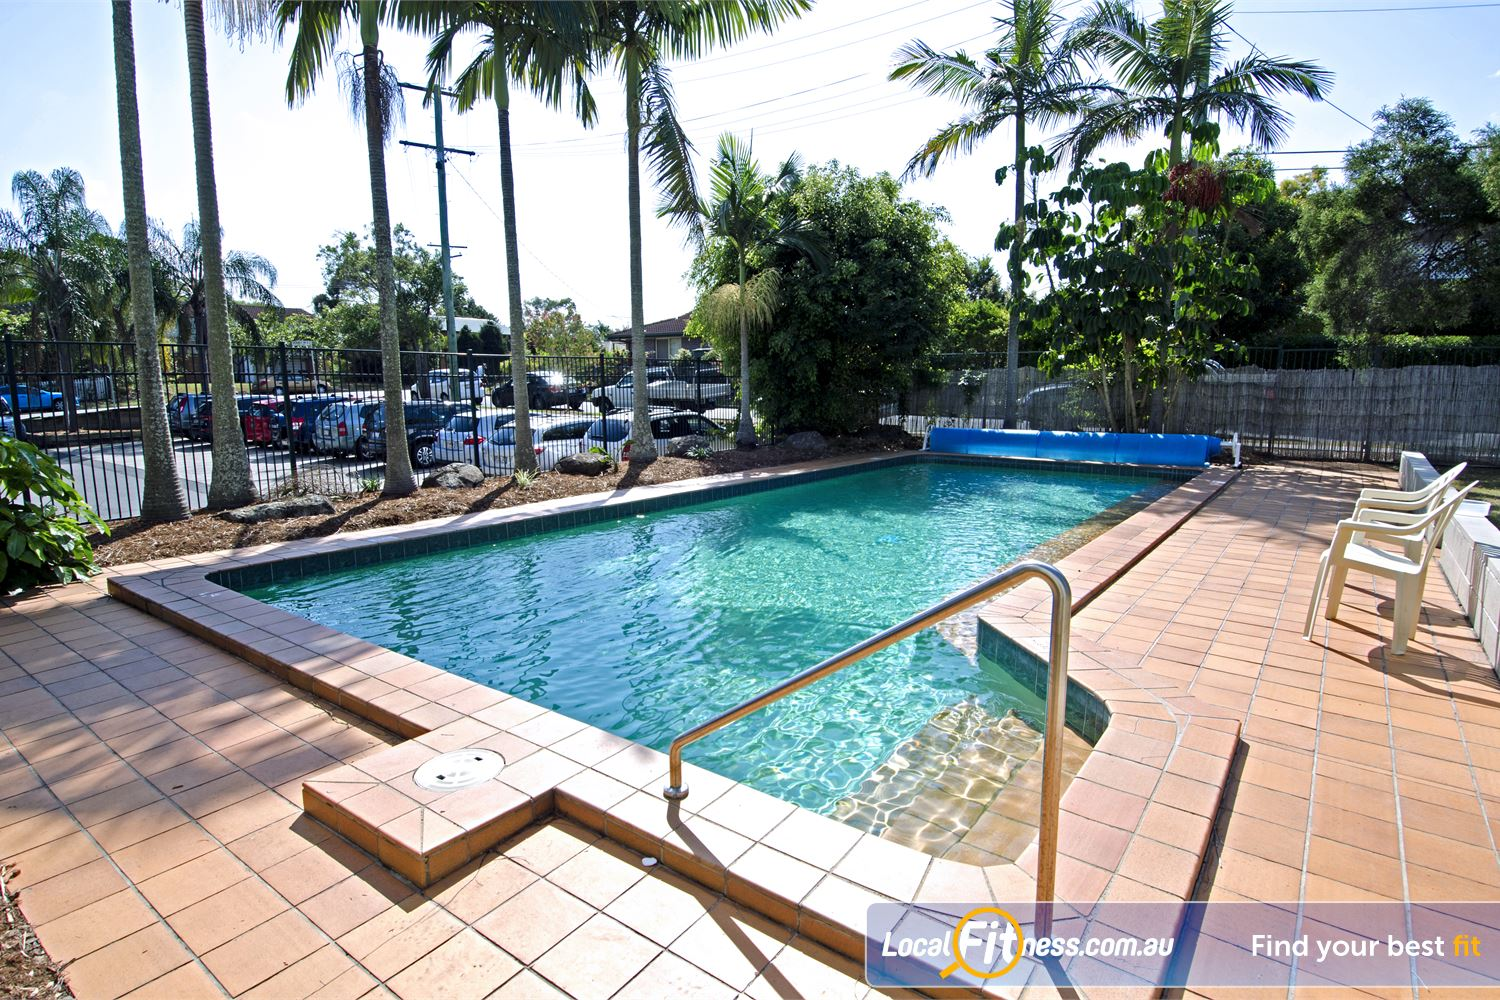 Goodlife Health Clubs Graceville The Graceville swimming area provides a tropical palm retreat.